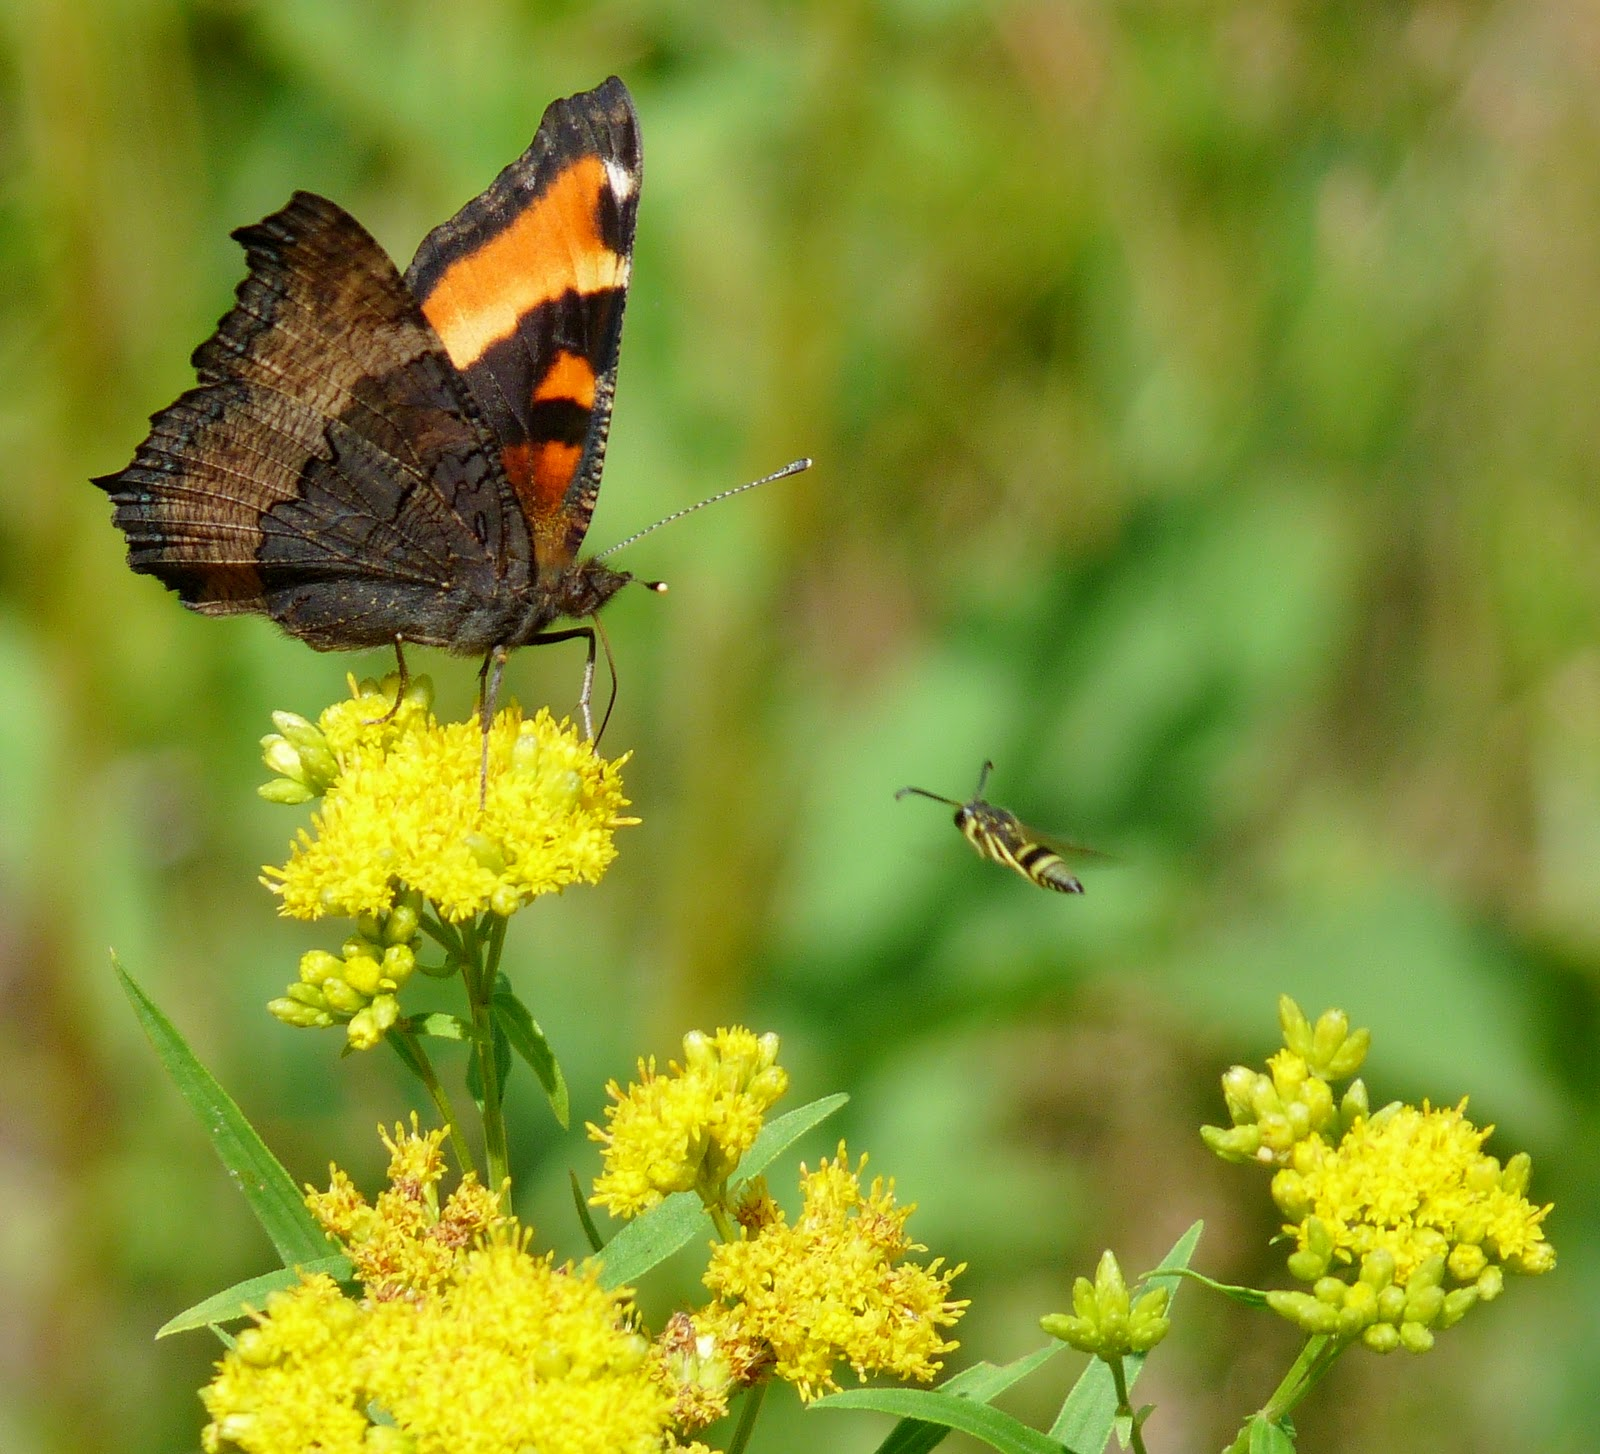 The Retirement Chronicles: Butterflies, Blooms, Bees and ...